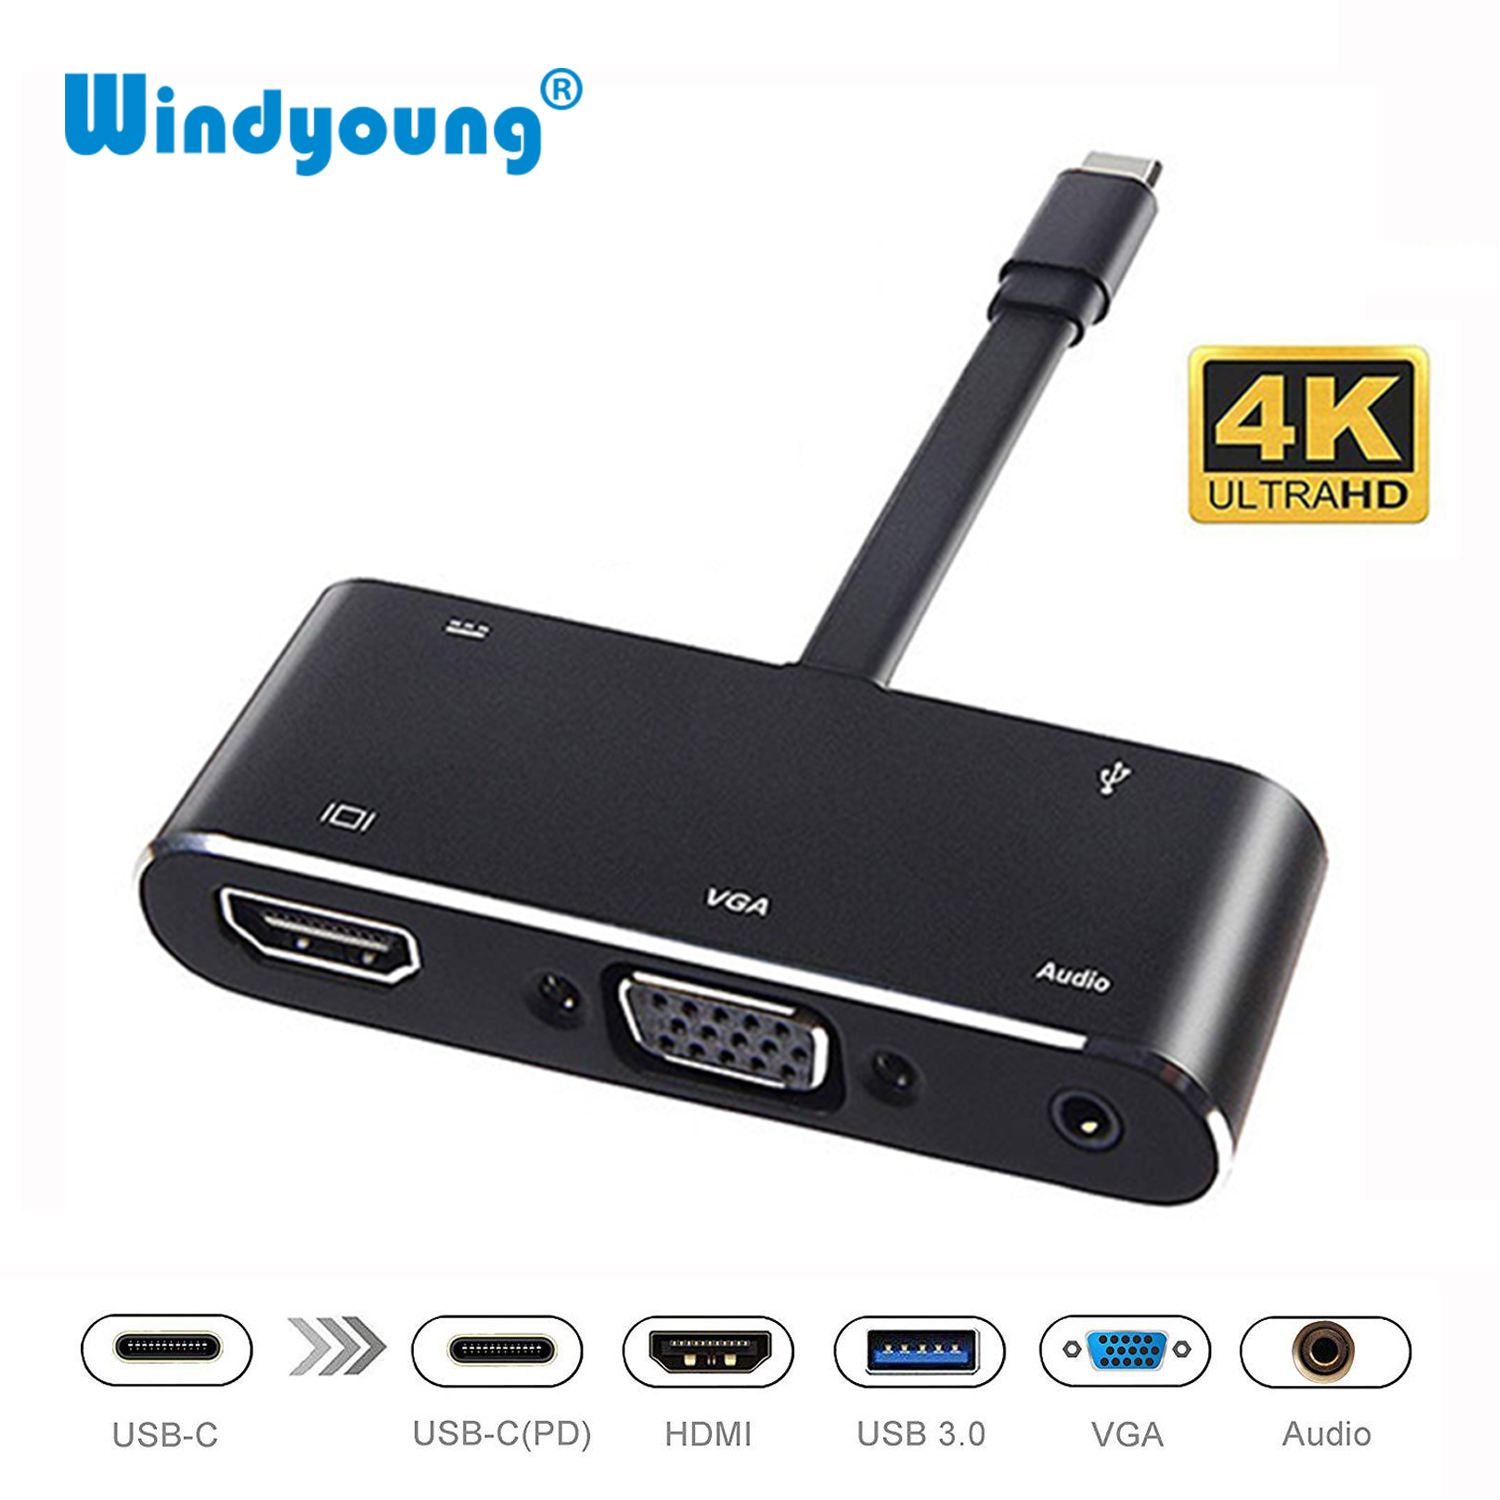 USB Type C HUB USB-C To HDMI 4K USB3.0 Audio VGA HUB Thunderbolt 3 Adapter For MacBook Pro Samsung Note8 S8 S9 Dex Mode Nintendo